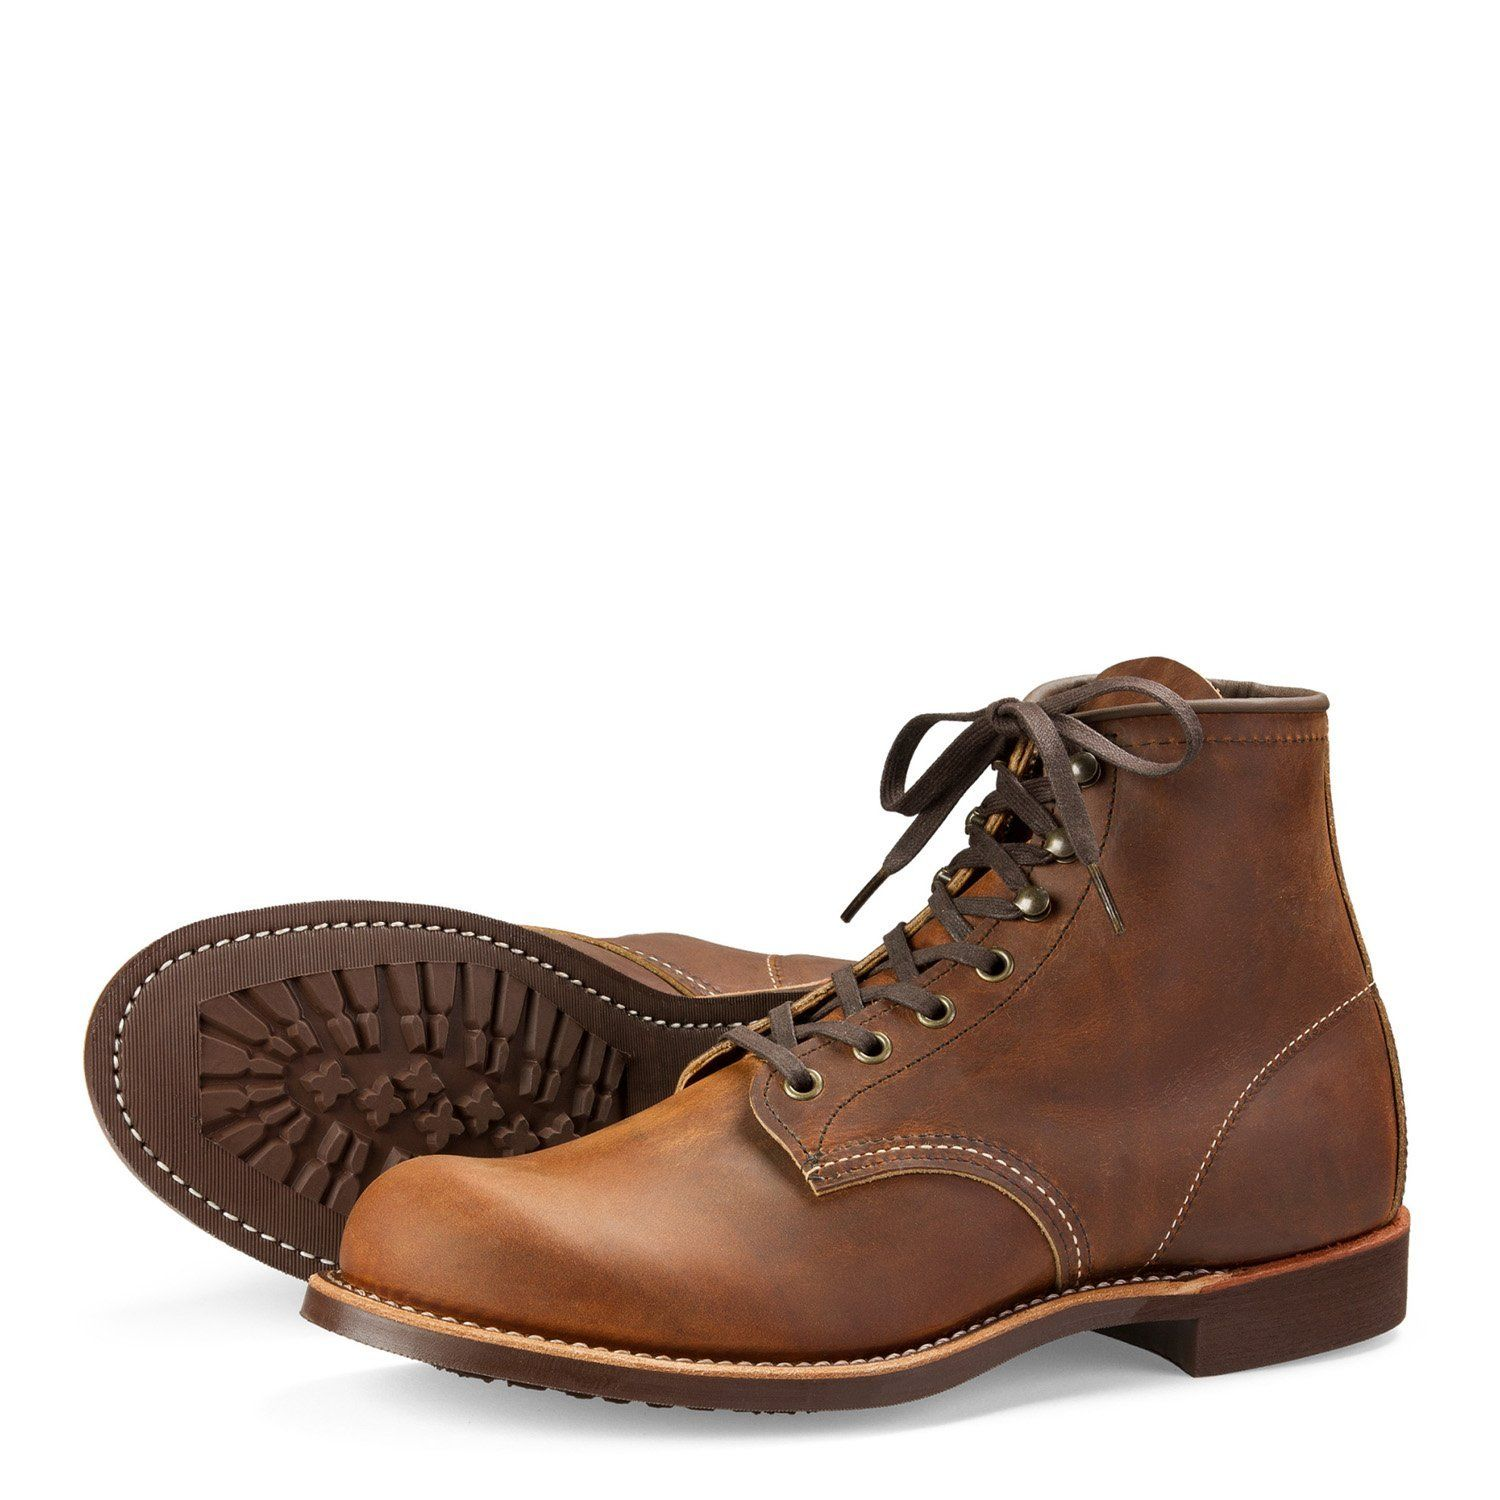 Red Wing Blacksmith 6 Inch Boots in Copper